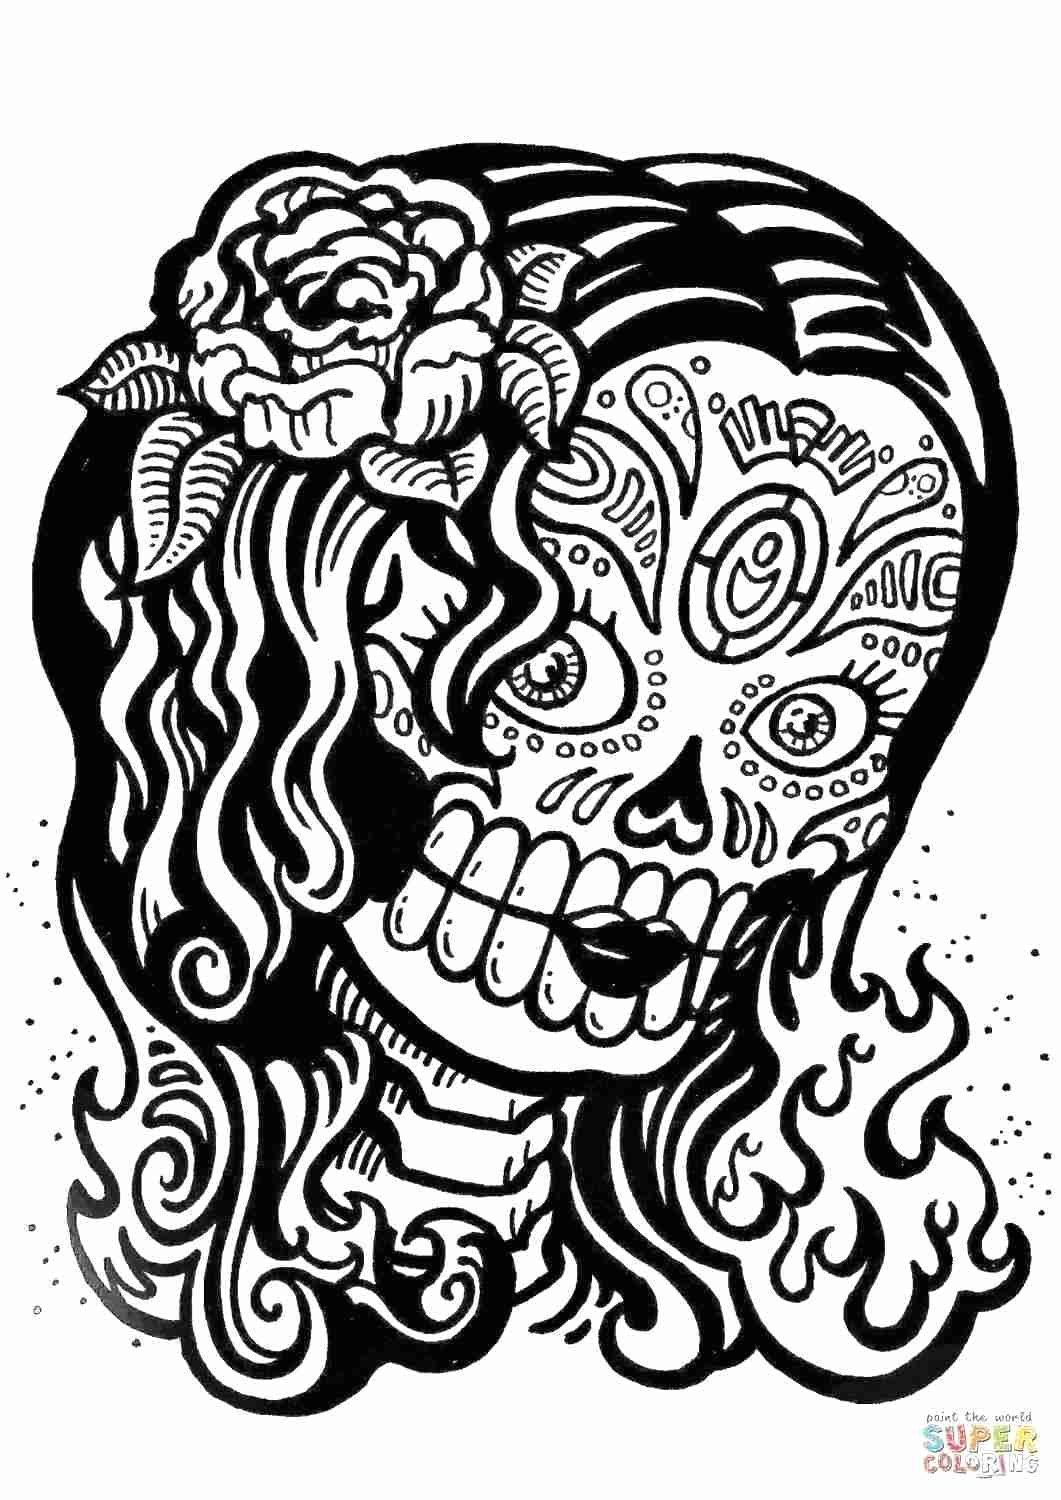 Sugar Skull Coloring Pages Awesome Junie B Jones Coloring Pages Topranksheet In 2020 Skull Coloring Pages Coloring Pages For Girls Coloring Pages